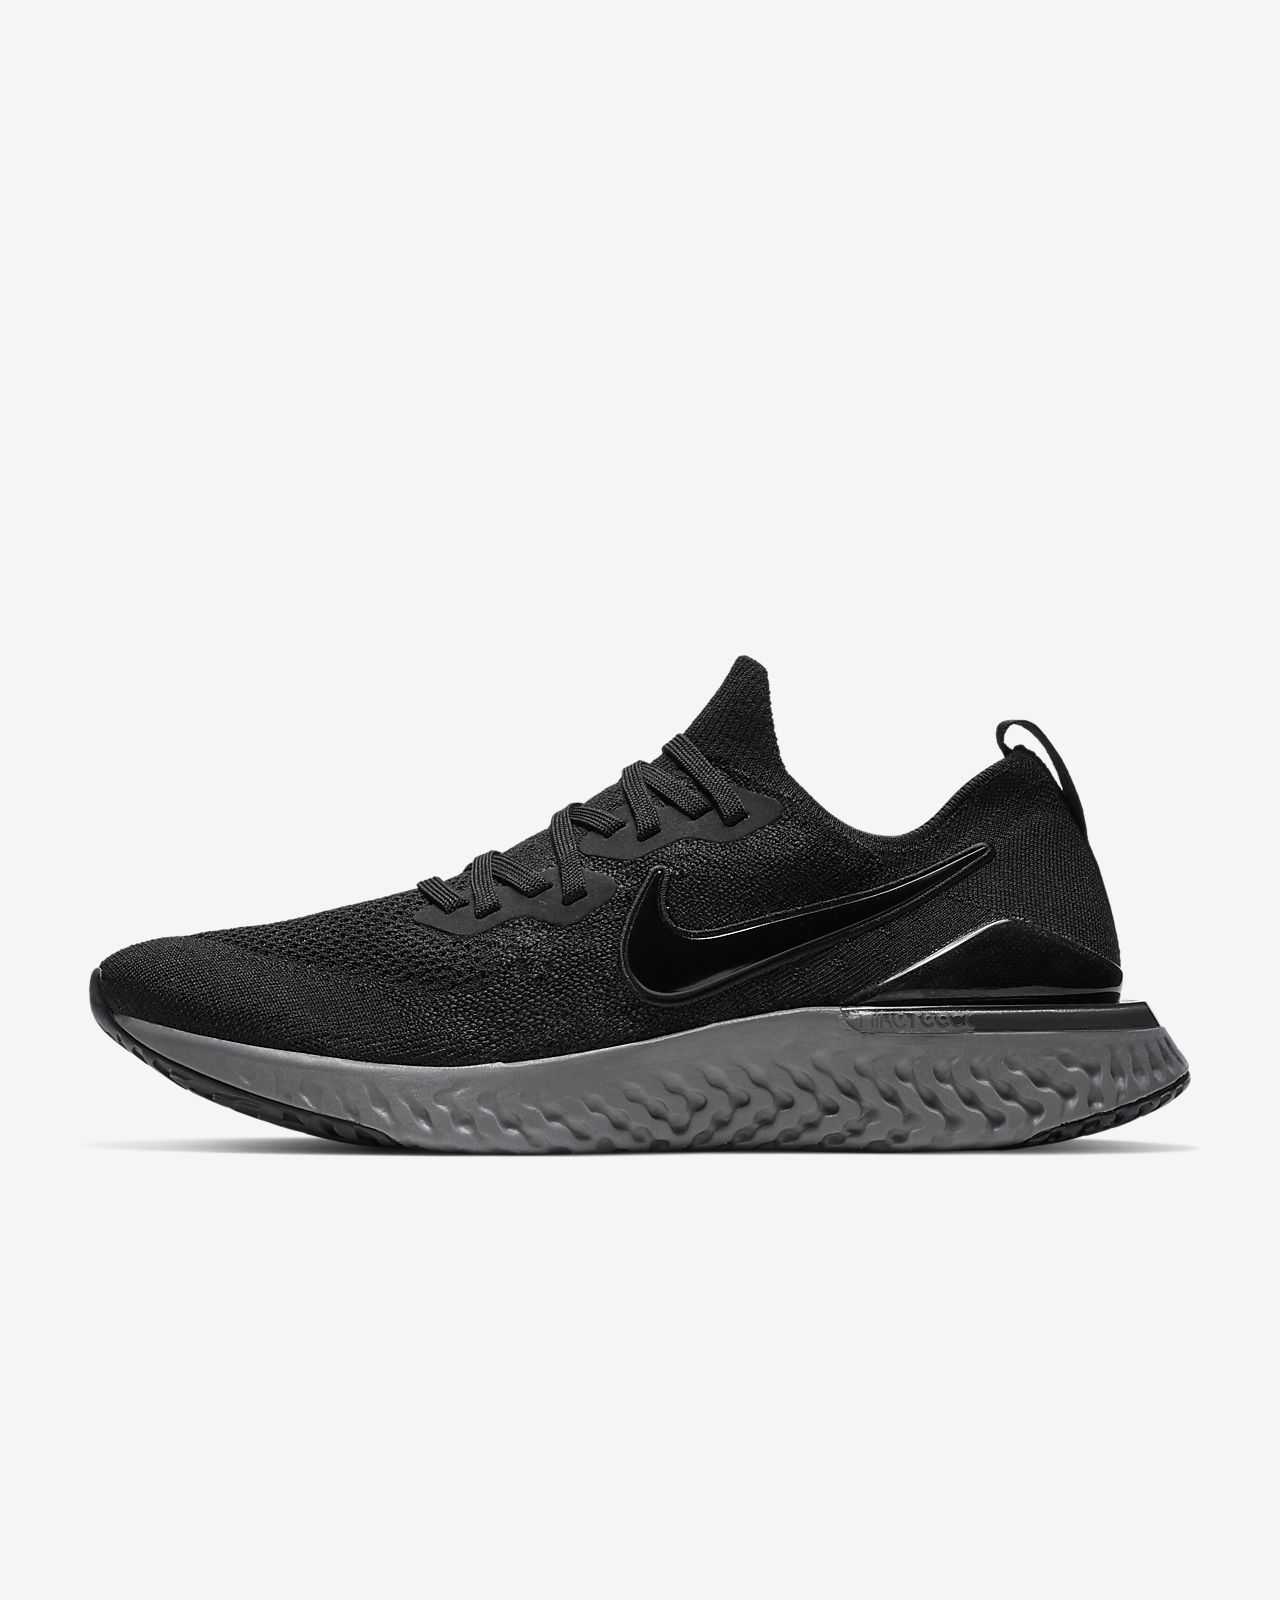 6589d02519dd epic-react-flyknit-2-running-shoe-2pbhWF.jpg